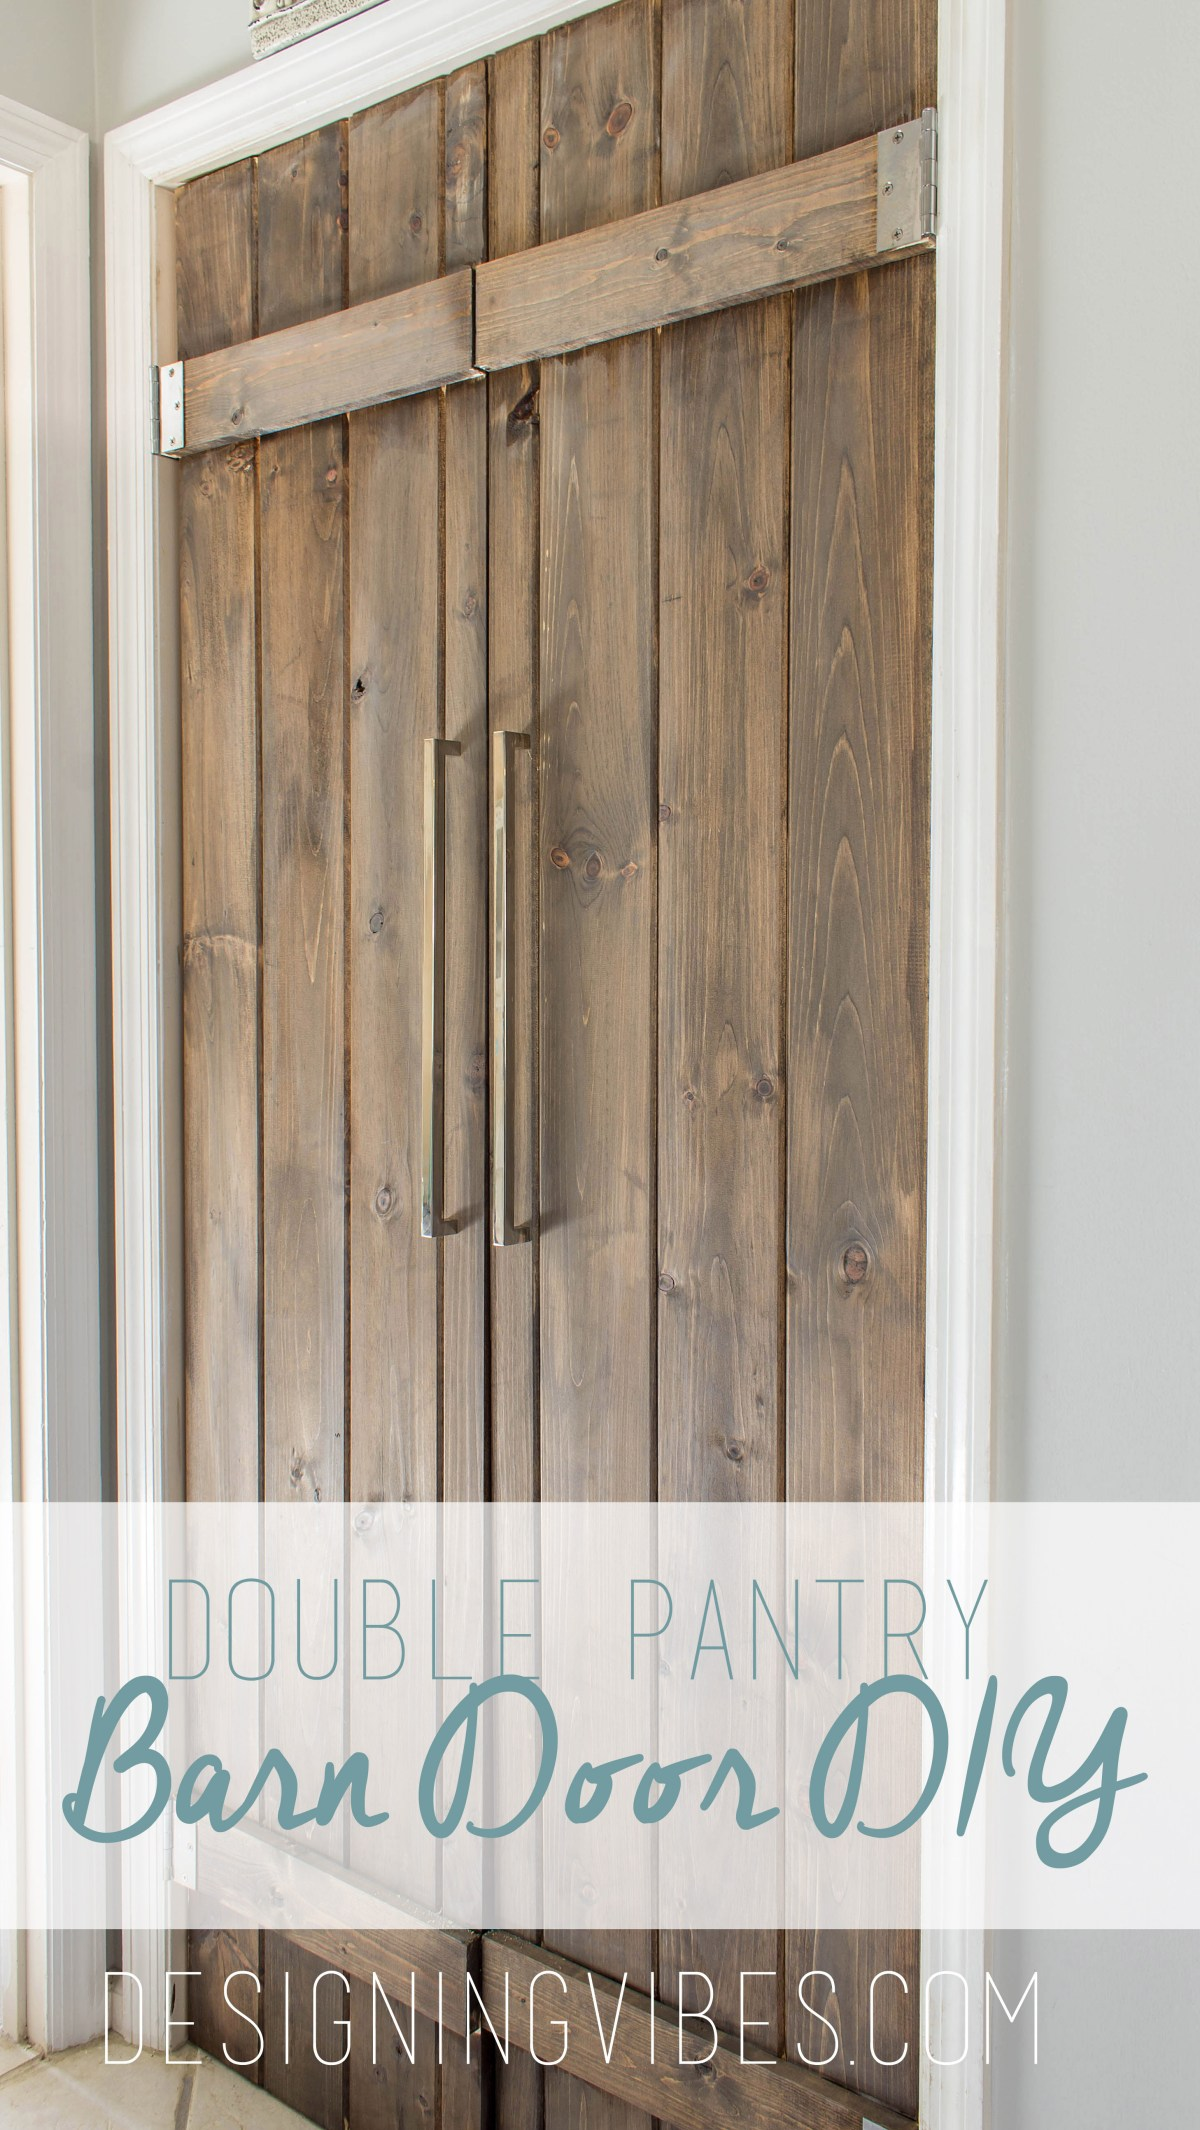 Double pantry barn door diy under 90 bifold pantry door diy for Narrow barn door